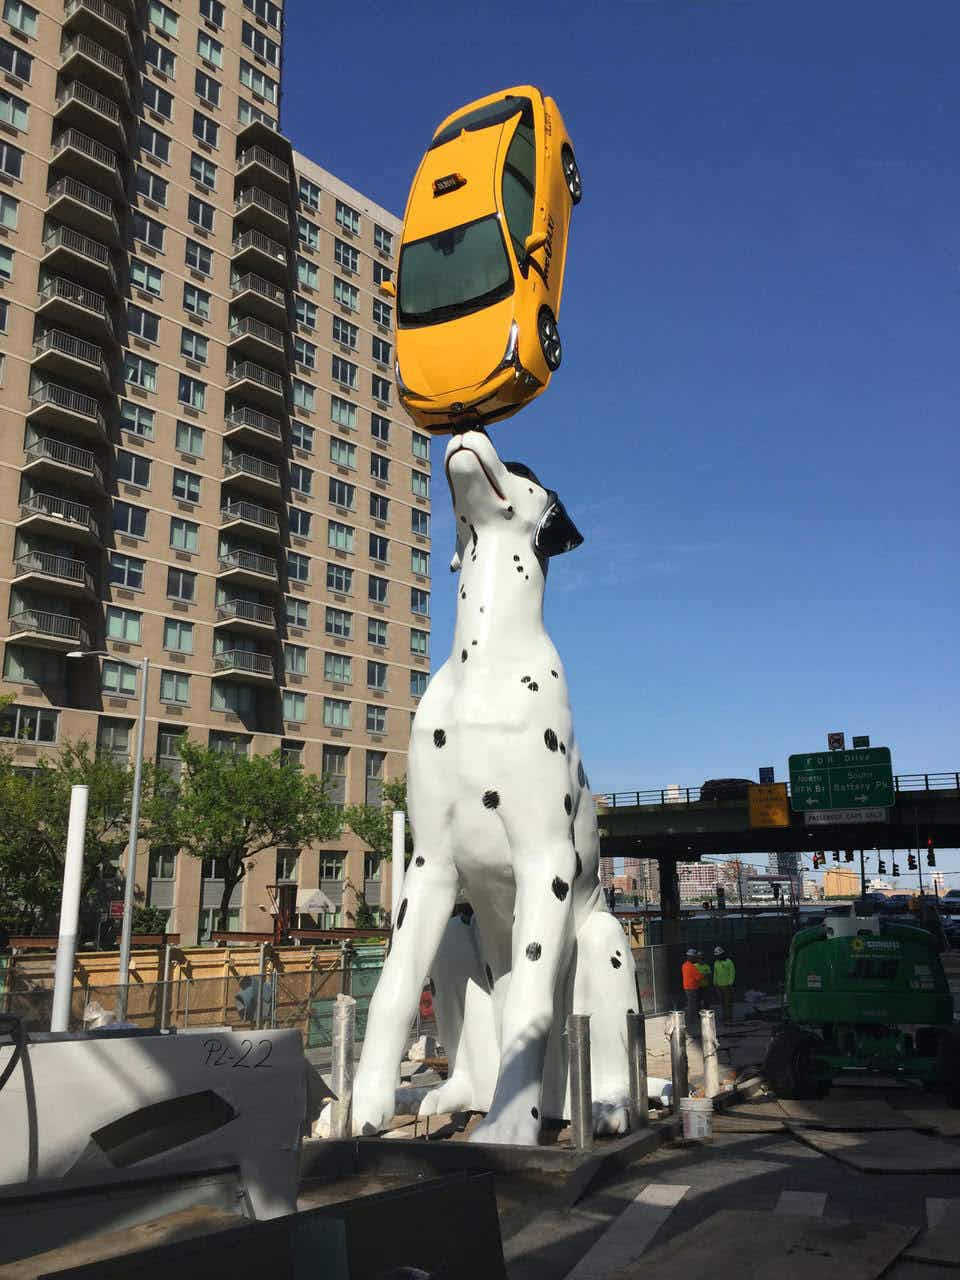 Meet SPOT, New York's latest piece of artwork, created to make sick children smile